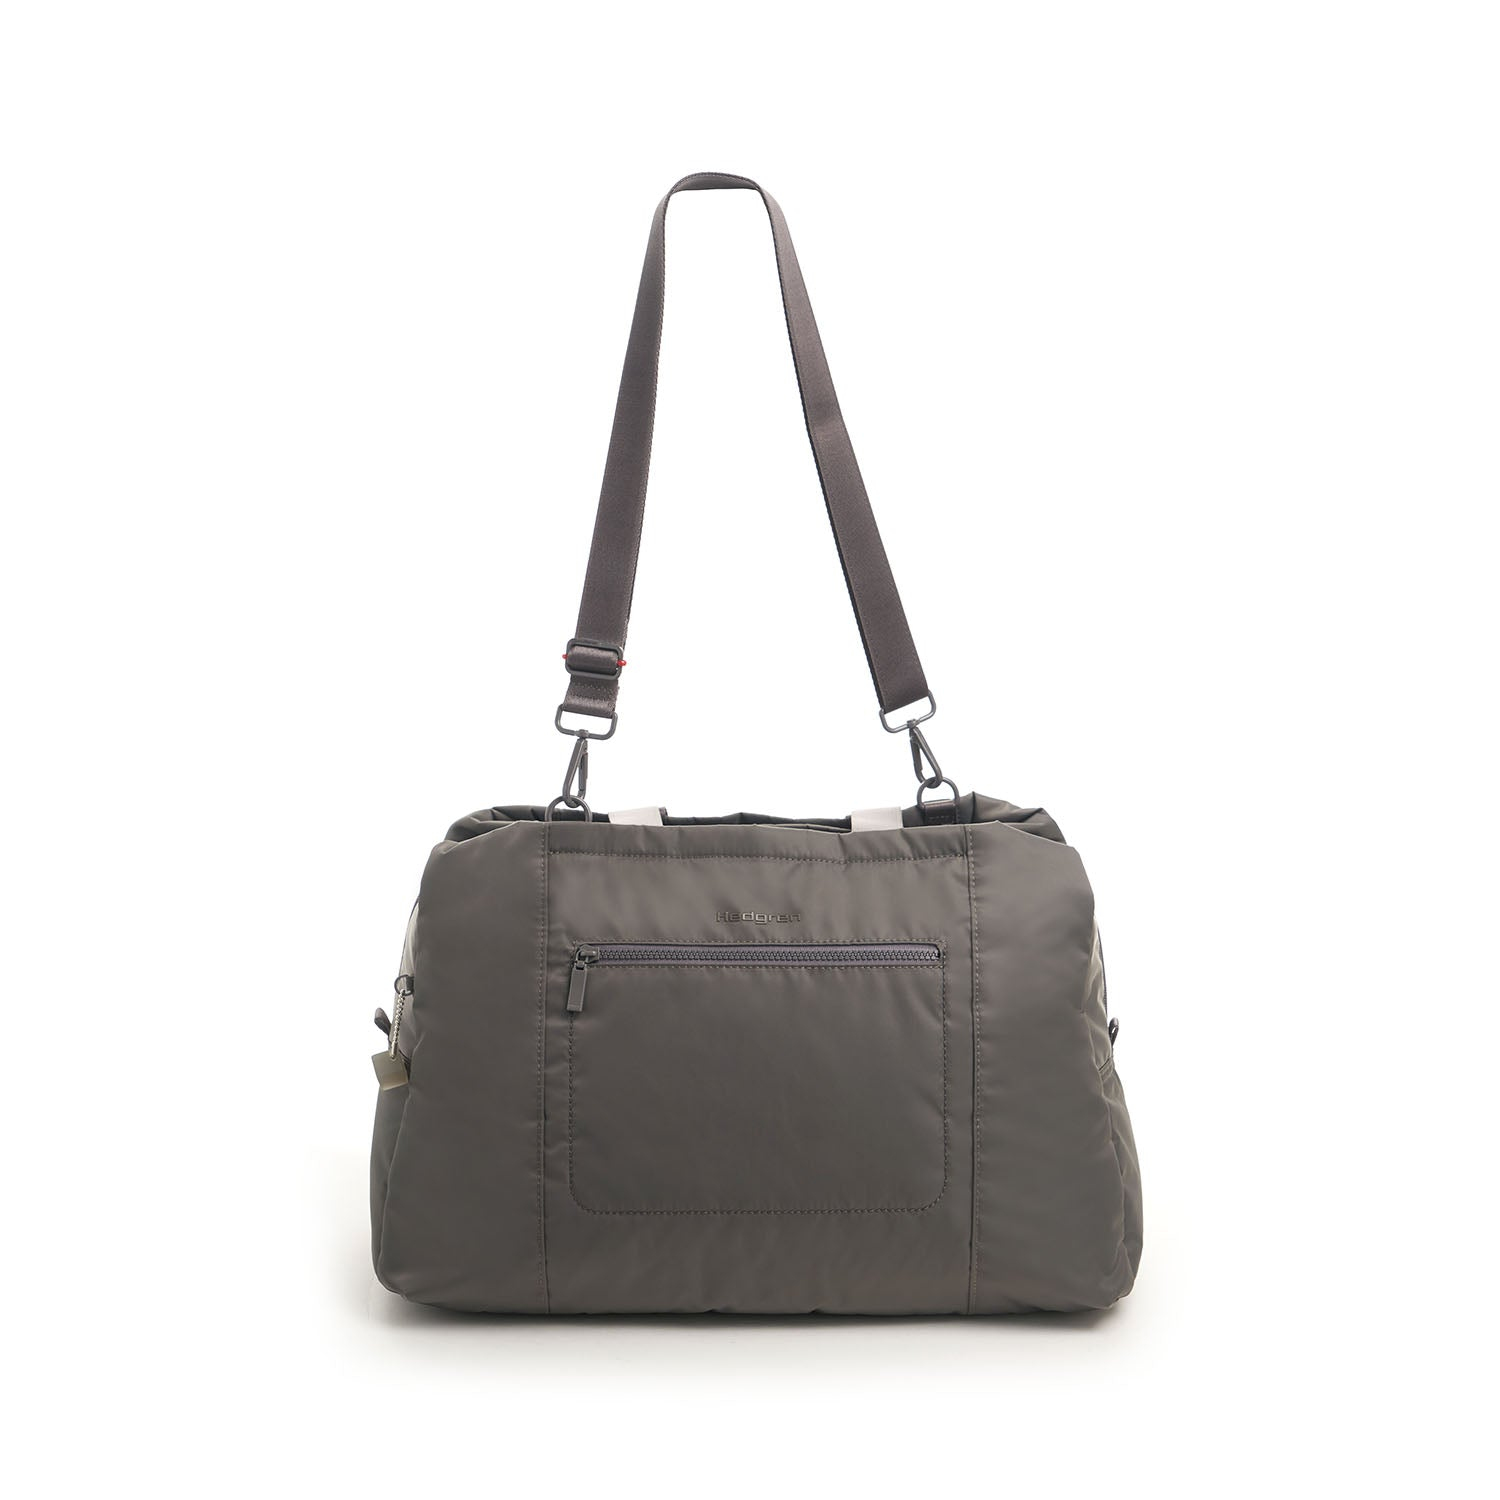 Stroll Travel Spacious Duffle Bag|Inter City Collection|Hedgren